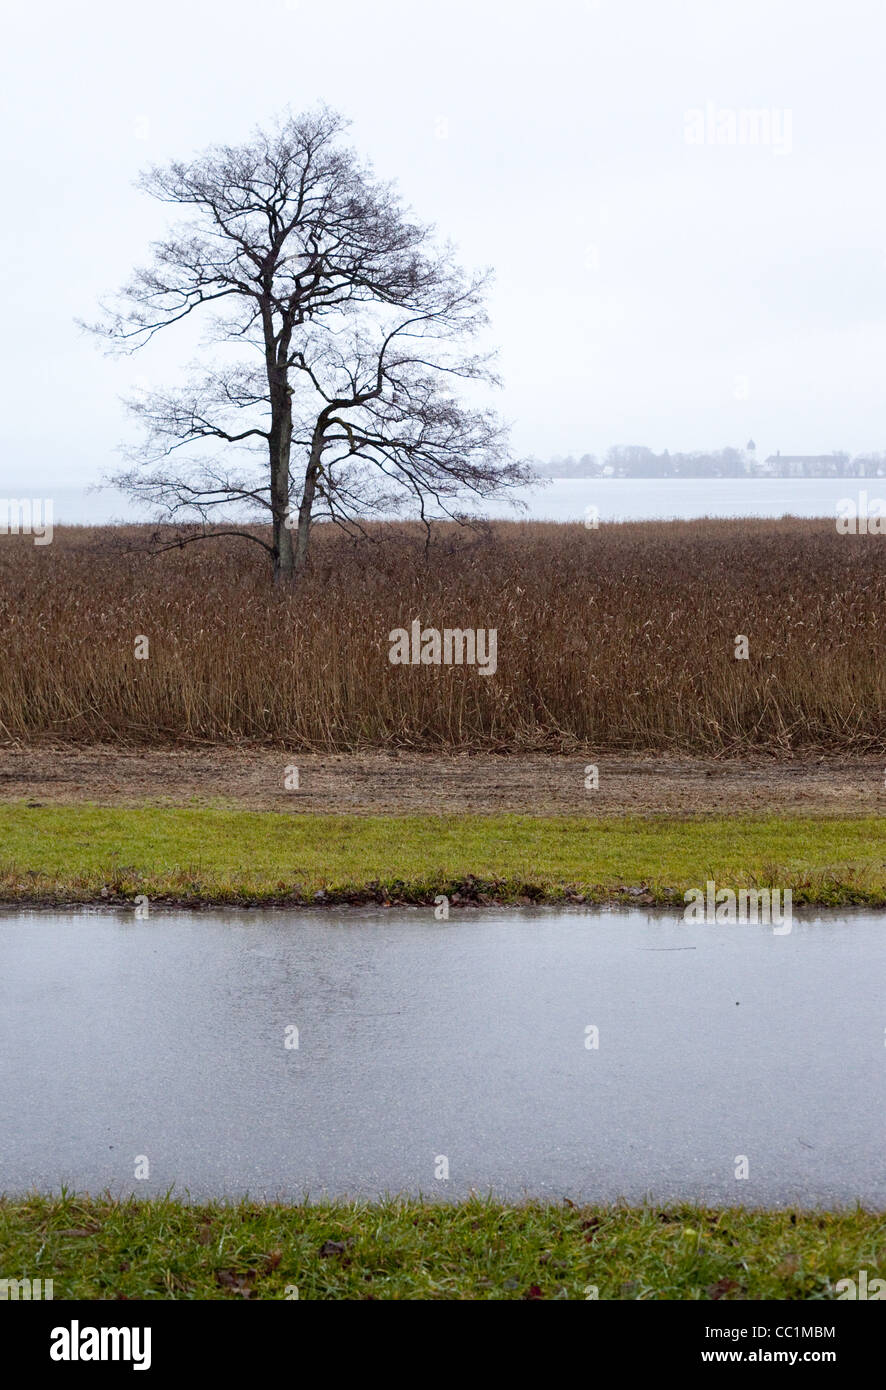 Vertical image of a leafless tree on a rainy day in fields of brown grass, a stream in the foreground, a lake in - Stock Image